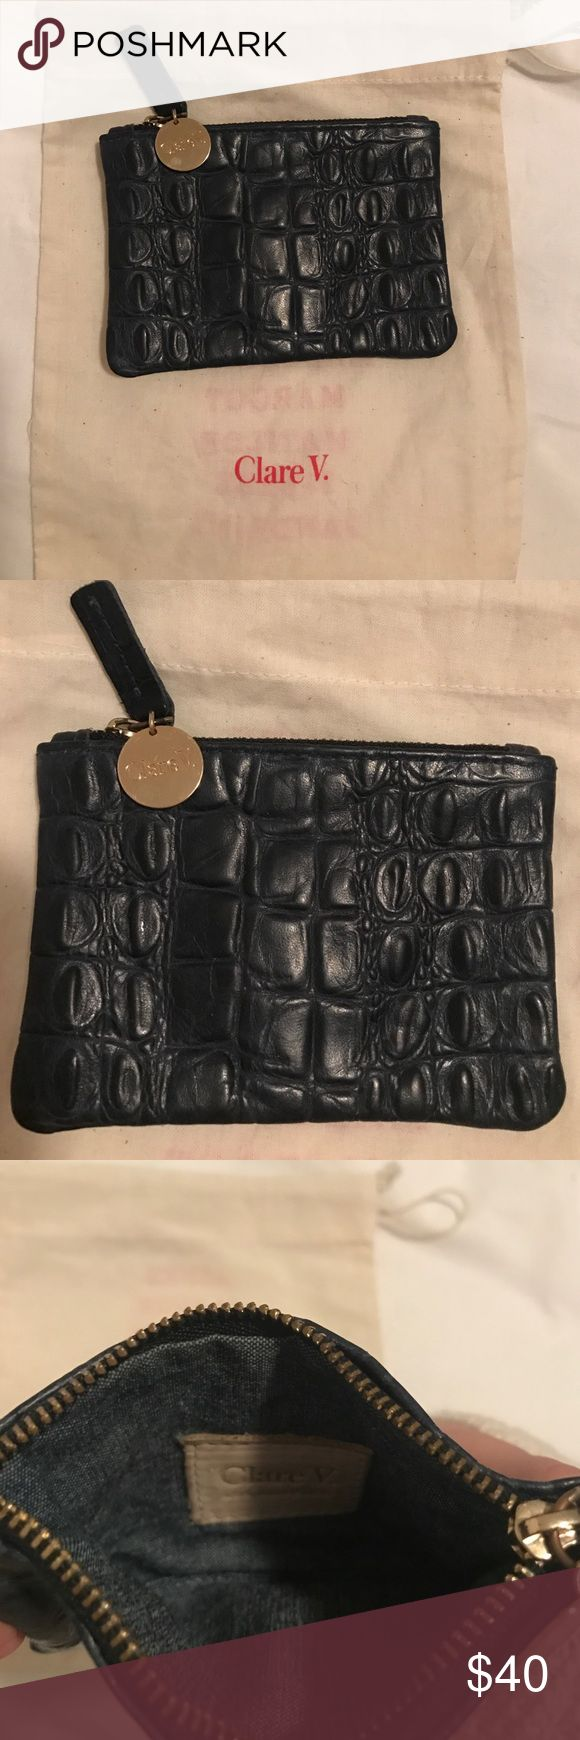 Clare Vivier Coin Clutch in Navy Croco This is a Claire Vivier coin clutch. Perfect as a coin purse or card carrier. In a pretty navy croco leather. Great condition and comes with a dust bag. Clare Vivier Bags Wallets